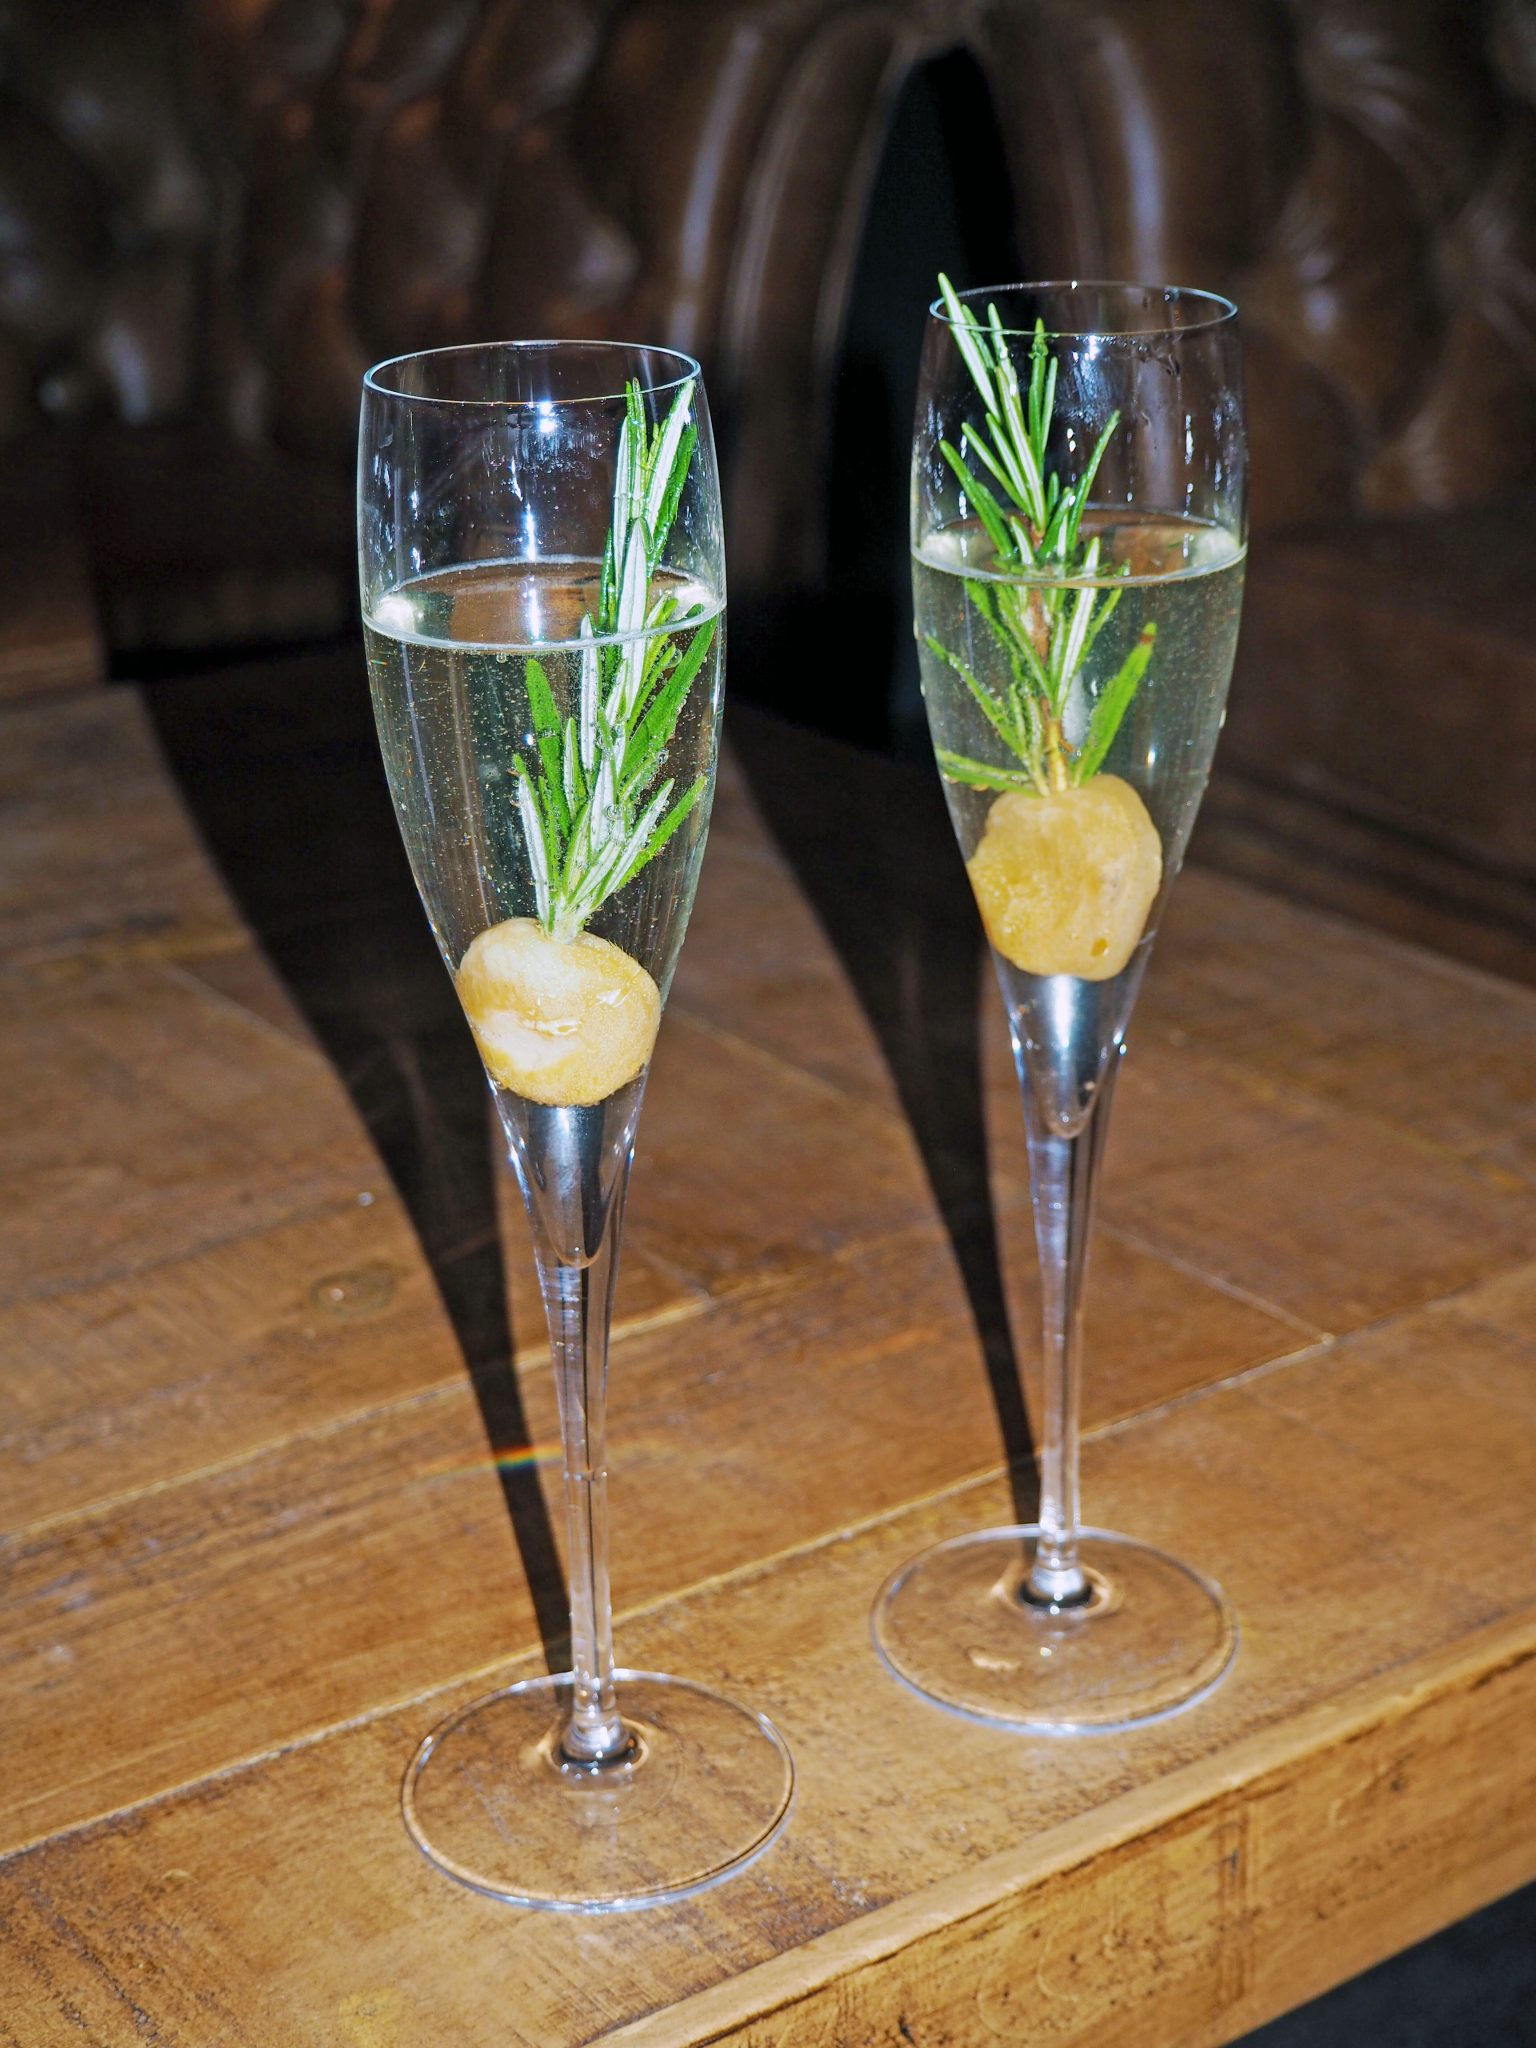 Laura Kate Lucas - Manchester Fashion, Food and Lifestyle Blogger | 1761 Restaurant and Bar Launch Review Manchester